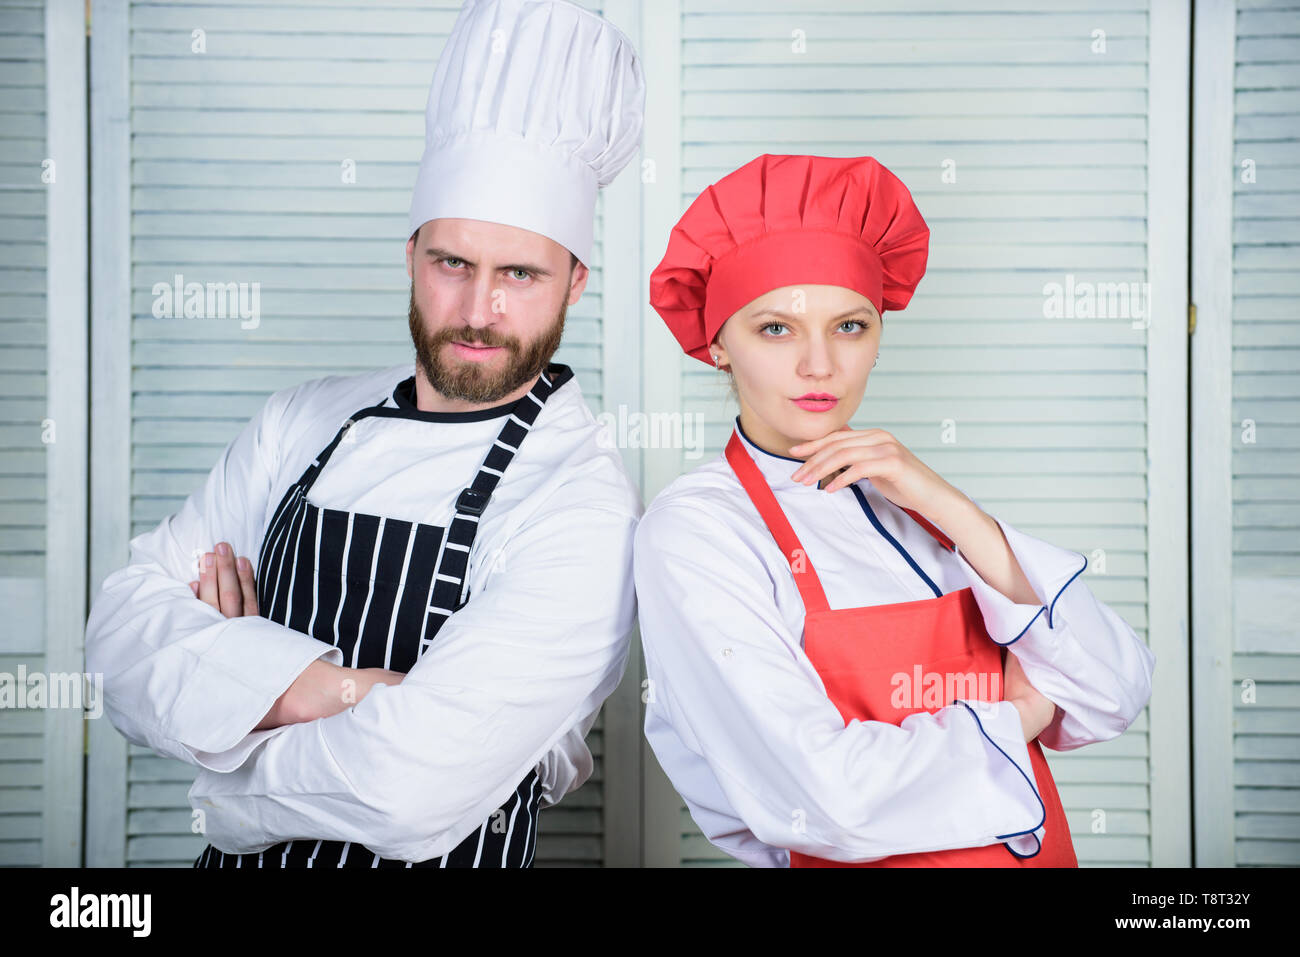 Delicious family dinner. Reasons couples cooking together. Cooking with your spouse can strengthen relationships. Teamwork in kitchen. Woman and bearded man culinary partners. Couple cooking dinner. - Stock Image